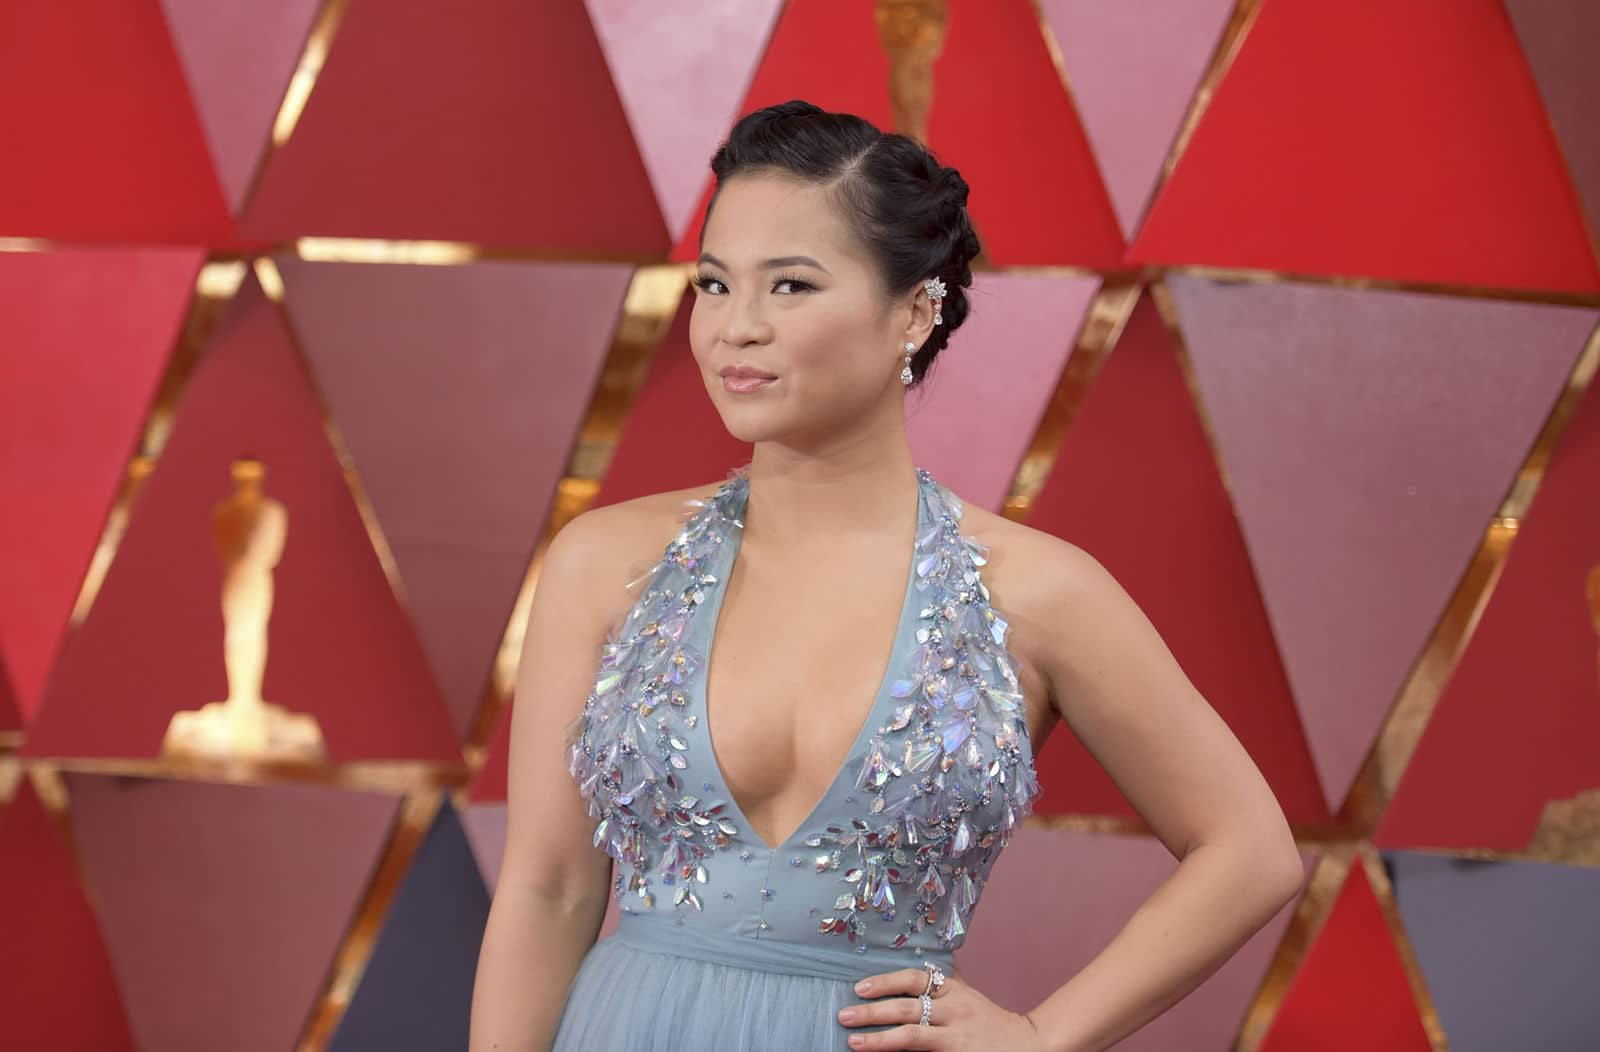 Kelly Marie Tran arrives at the Oscars on Sunday, March 4, 2018, at the Dolby Theatre in Los Angeles. (Photo by Richard Shotwell/Invision/AP)